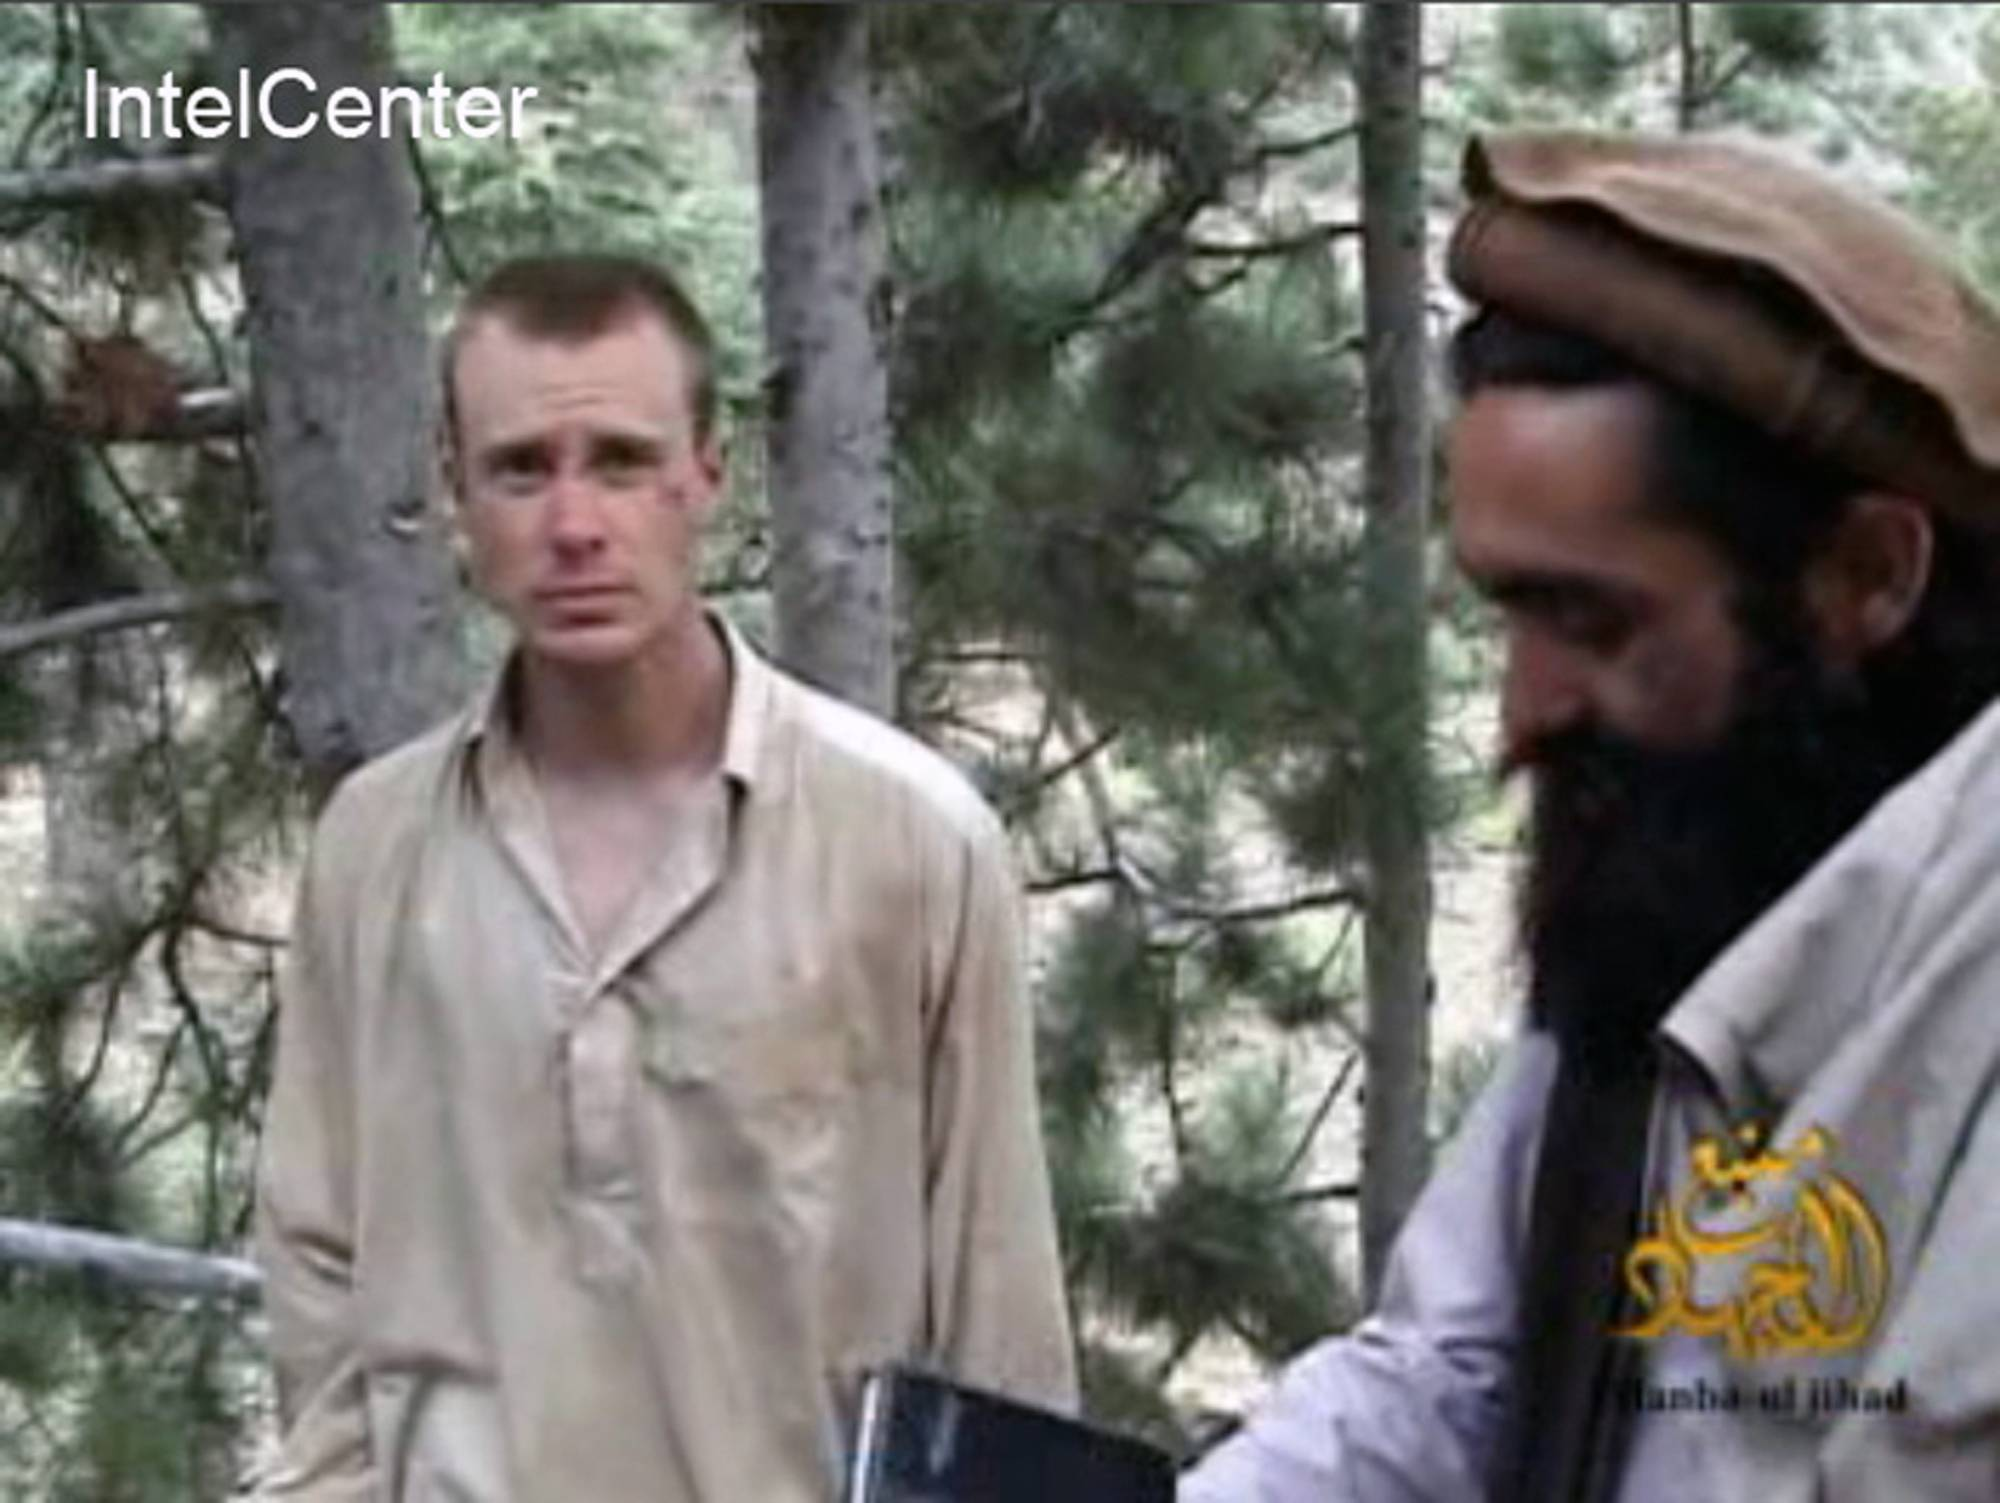 U.S. values collided in Bergdahl's predicament